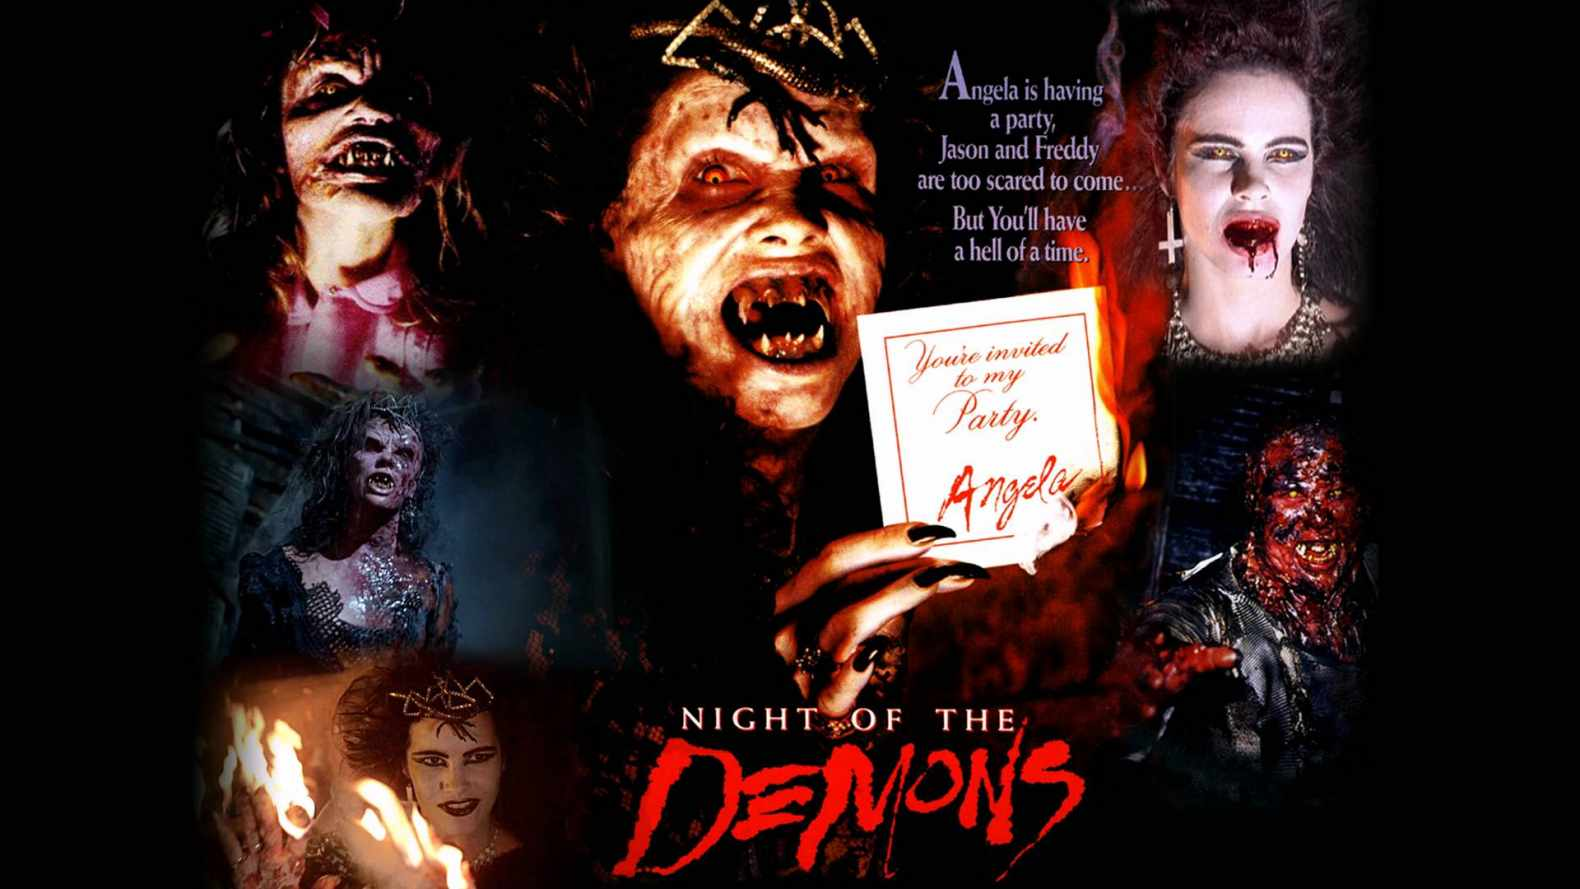 Night of the Demons has remained a talked-about cult classic for 30 years!